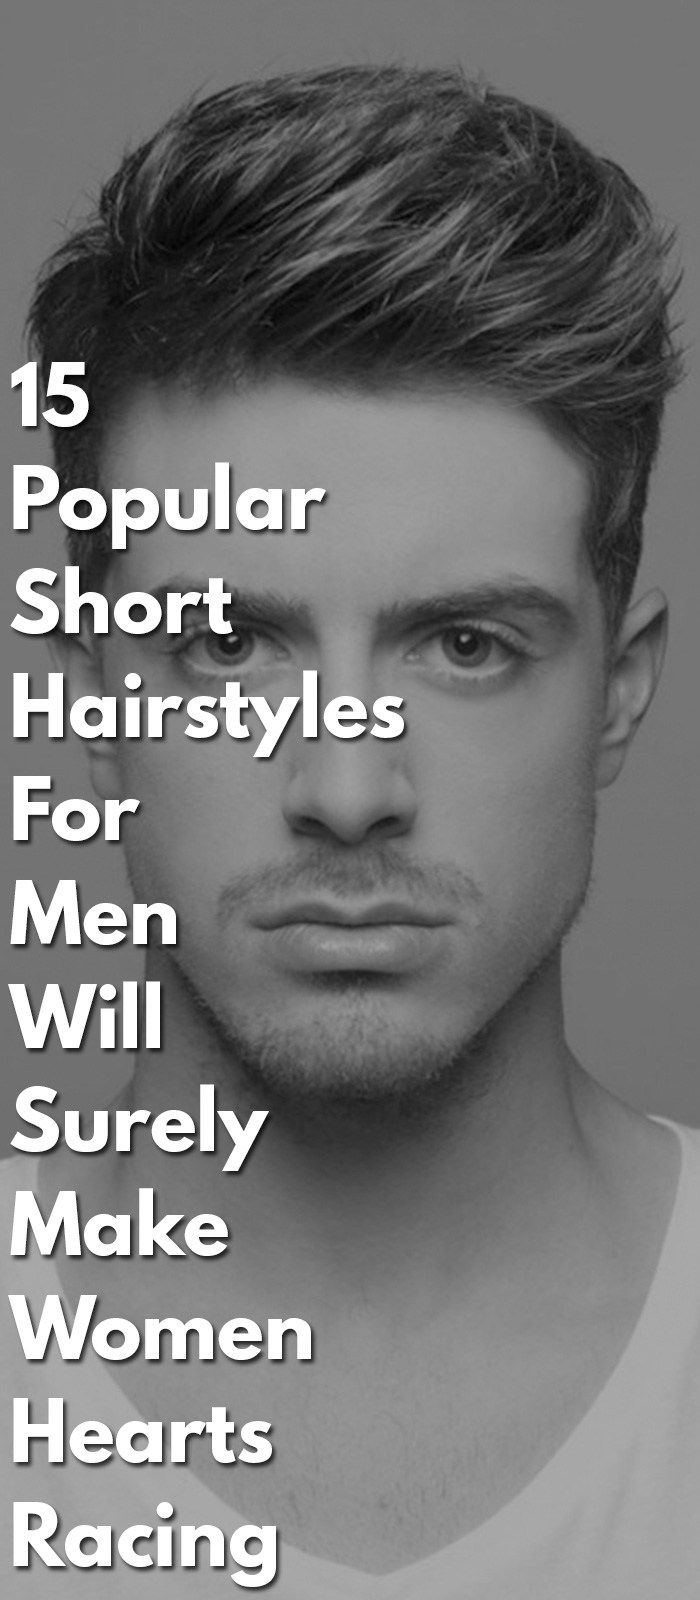 Boy hairstyle in short hair  exciting short hairstyles for the minimalistic men  mens